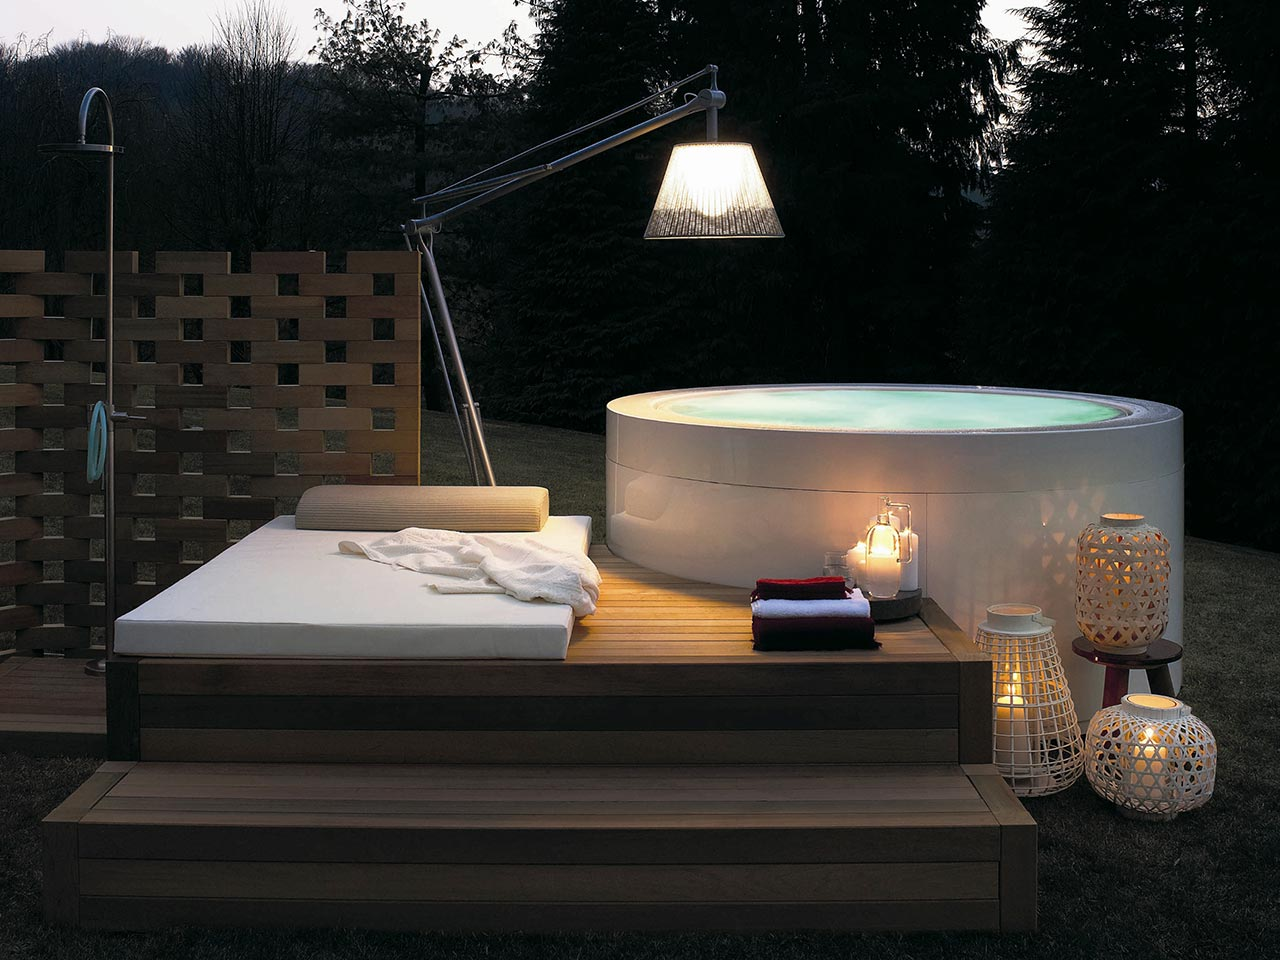 Kos by Zucchetti, mini pool Round Hot Tub